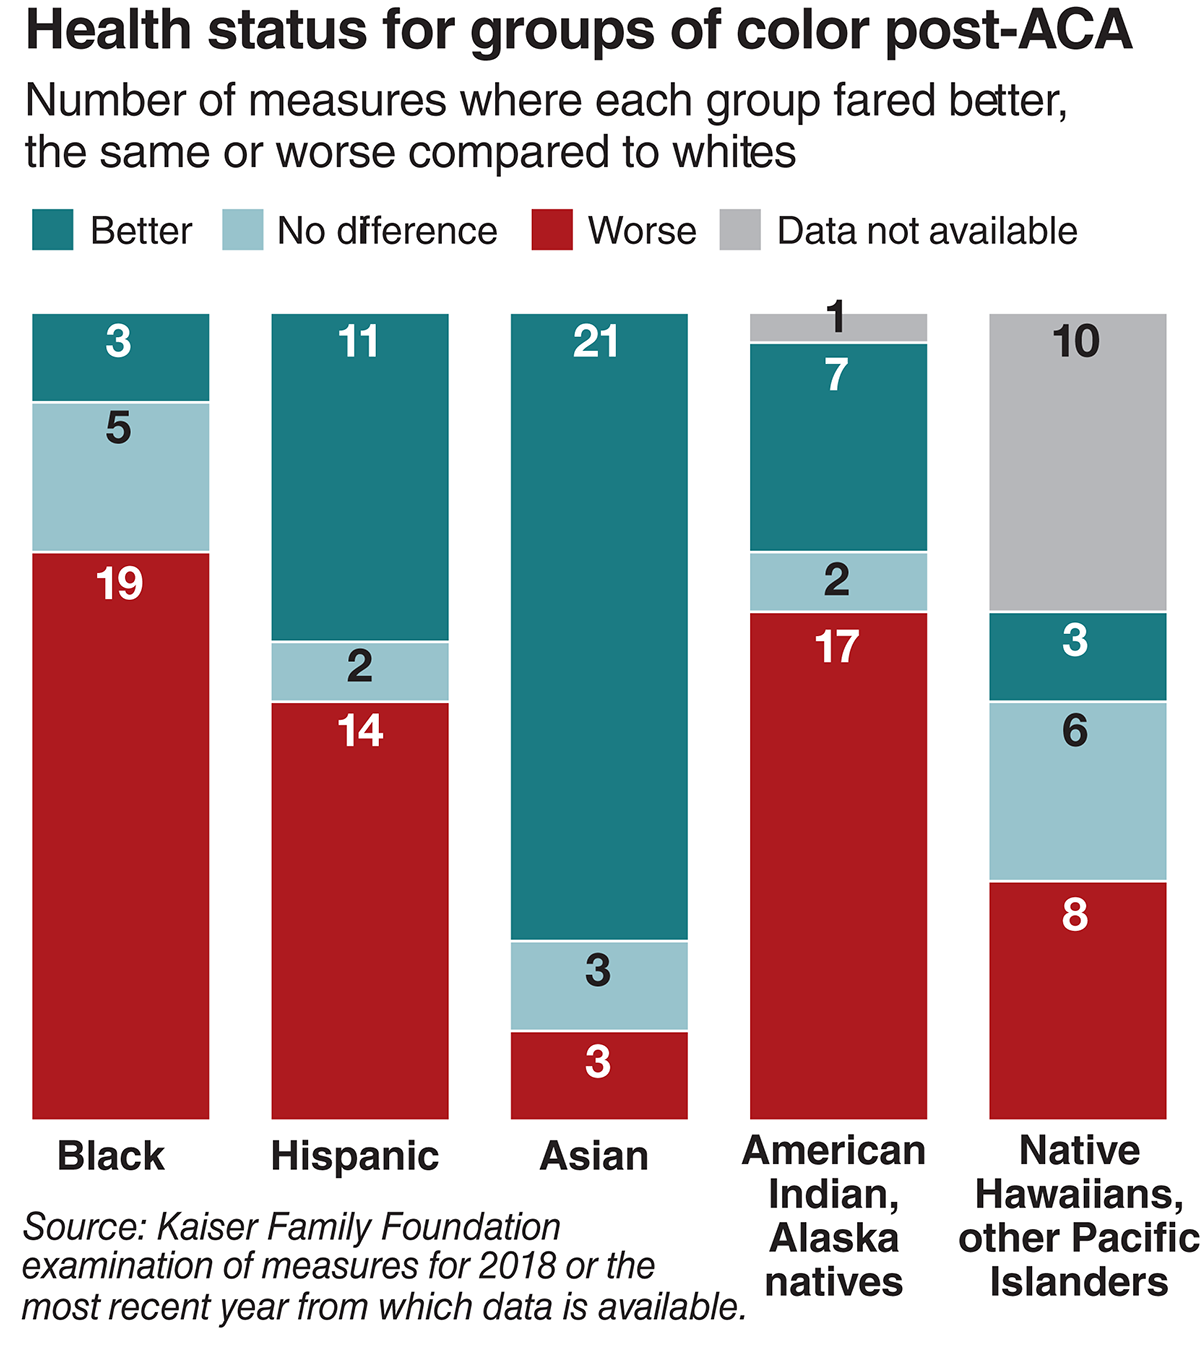 Health status for groups of color post-ACA